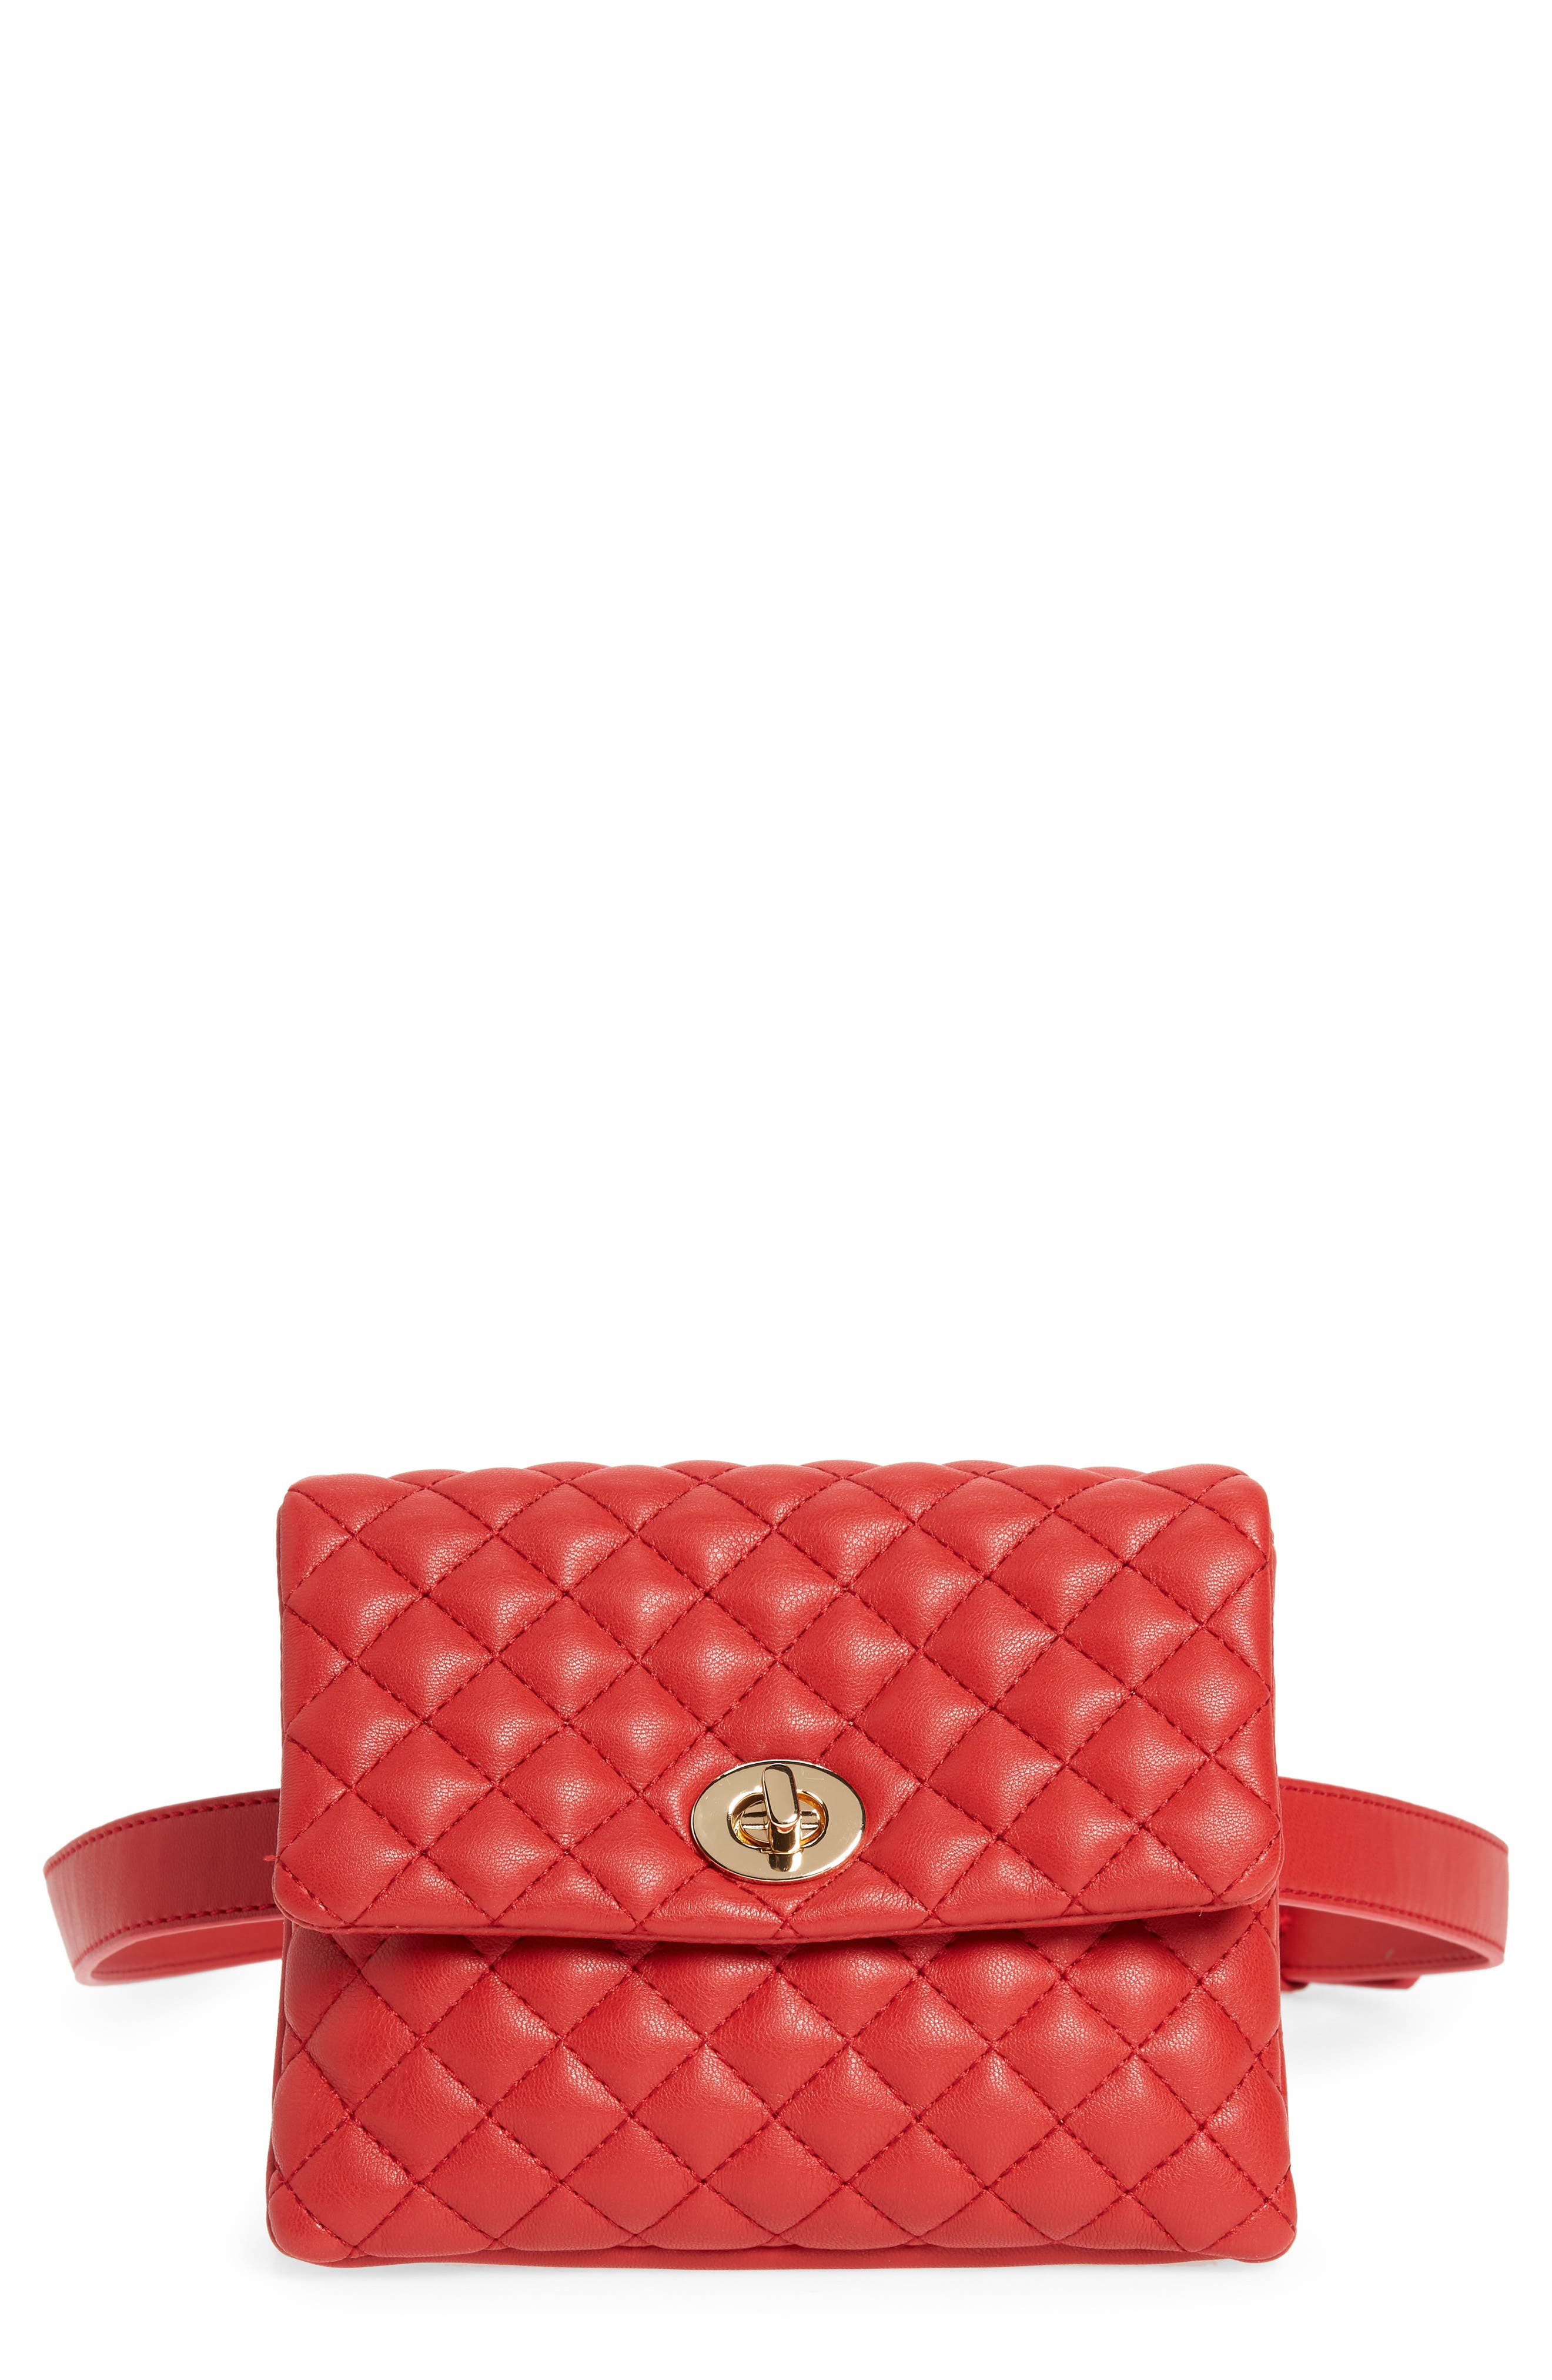 Mali + Lili Quilted Vegan Leather Convertible Belt Bag,                             Main thumbnail 1, color,                             Red